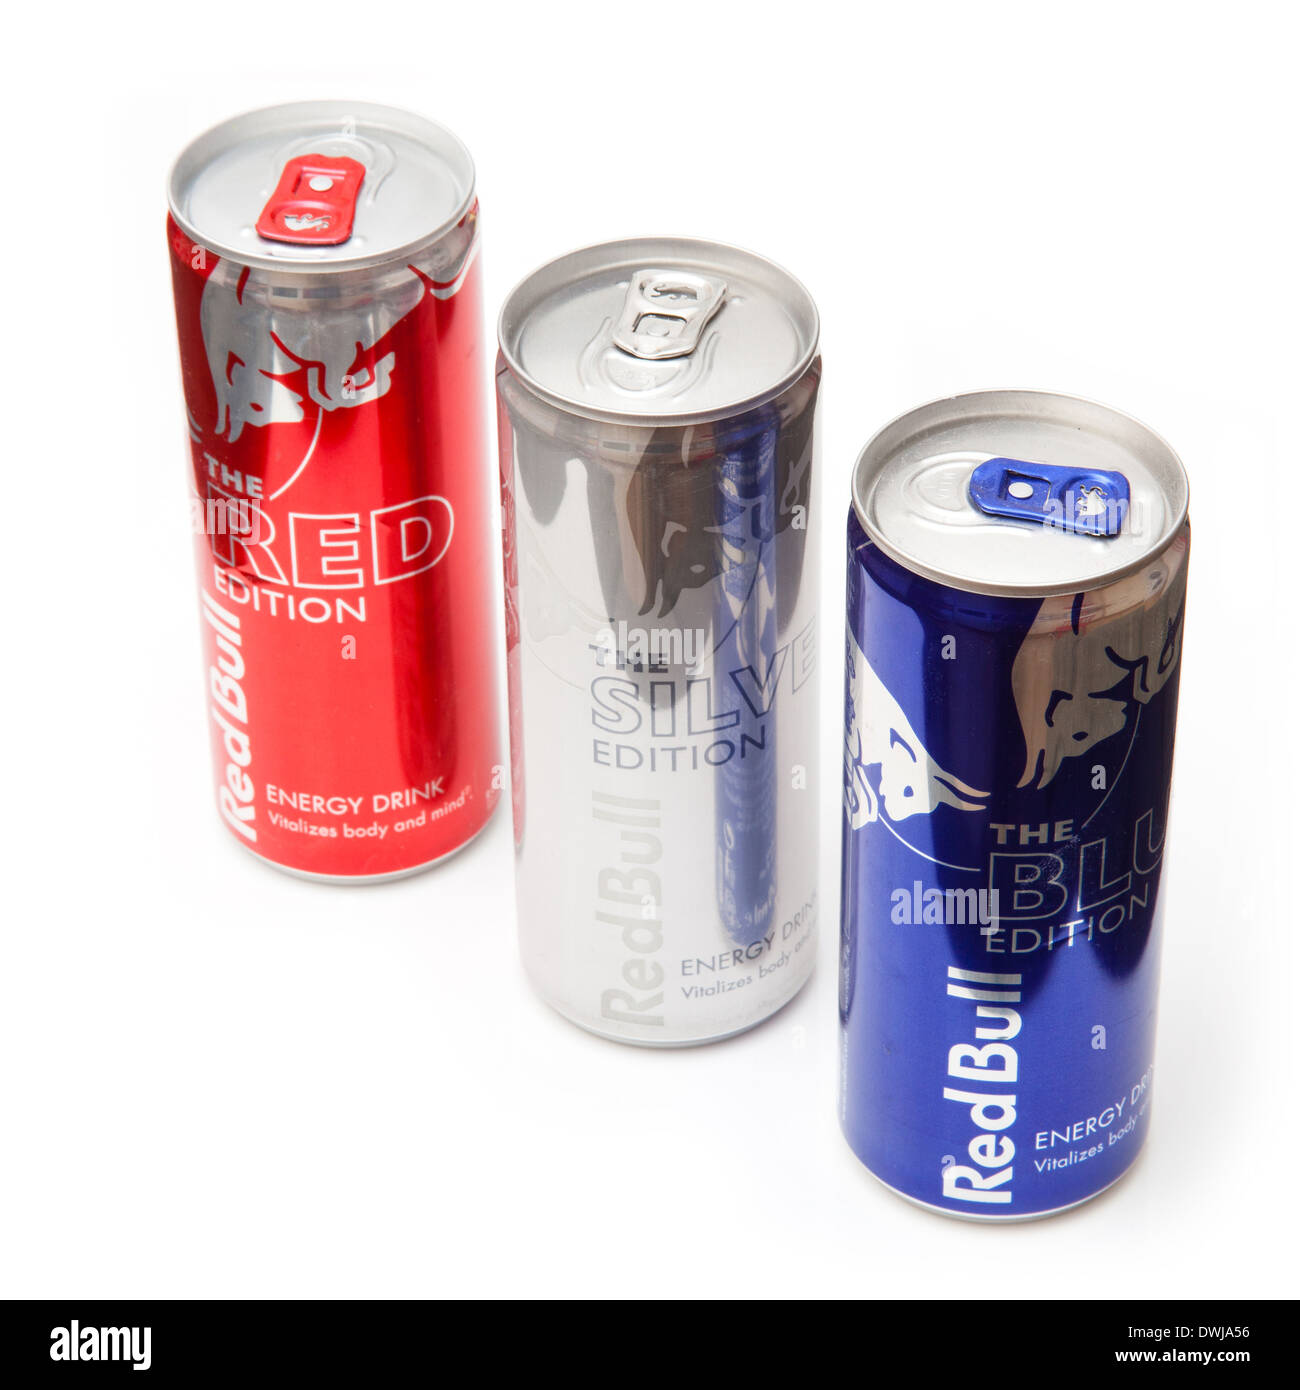 red bull cans stock photos red bull cans stock images. Black Bedroom Furniture Sets. Home Design Ideas